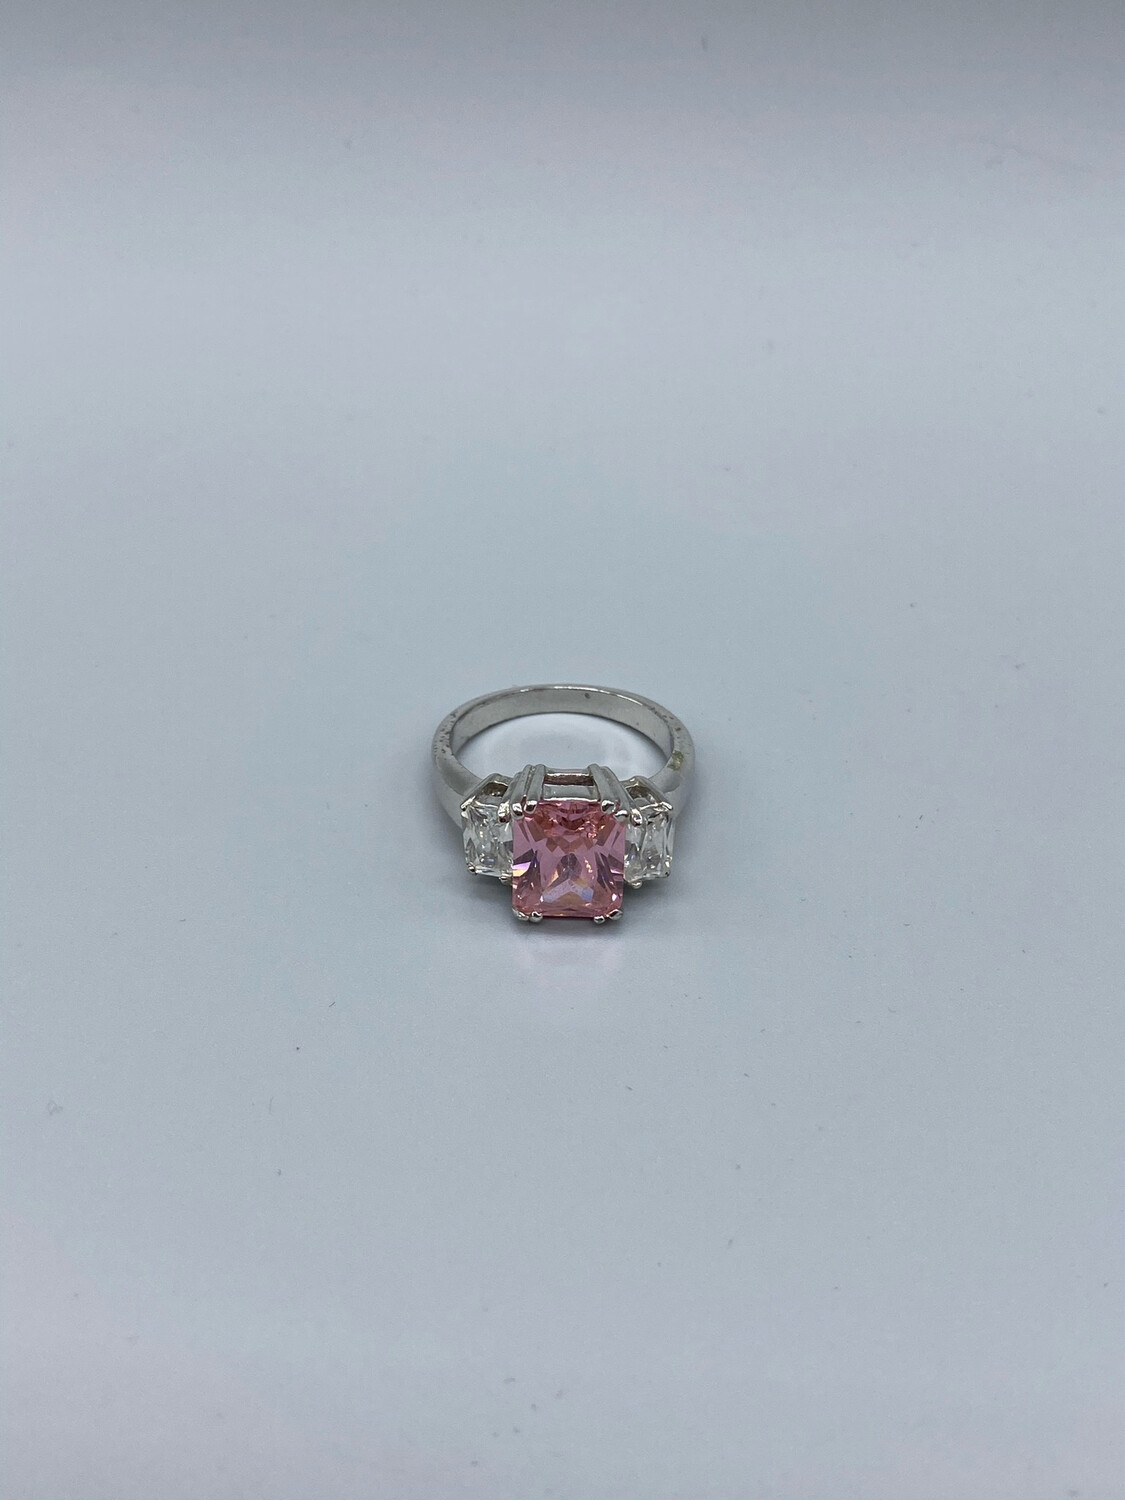 Vintage Square-cut Pink And White Stone Ring Size 9